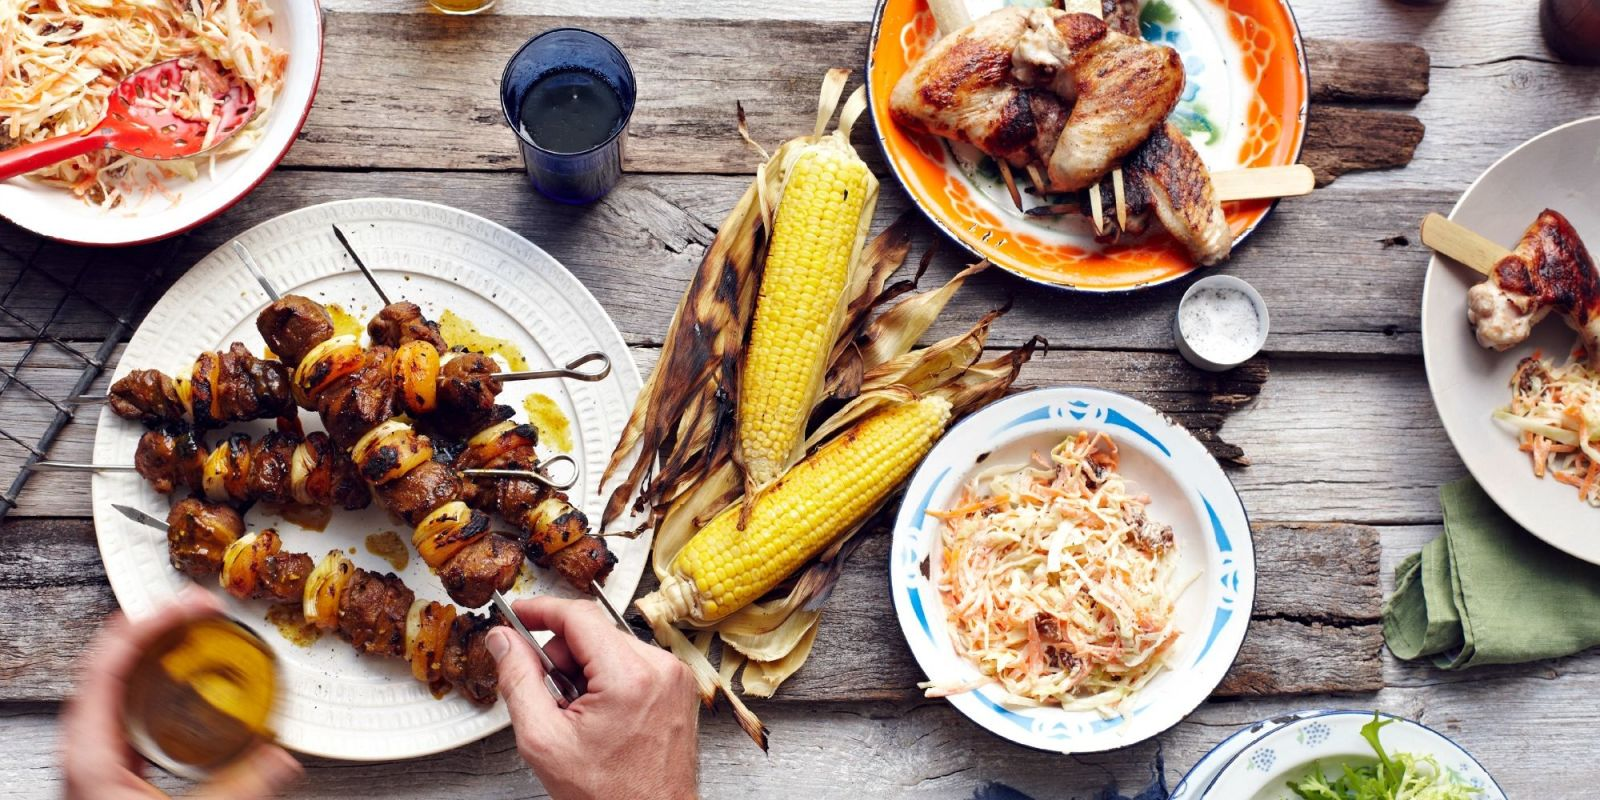 Summer Menu Ideas Dinner Party Part - 49: Summer Cookout Menu Ideas Grilling Recipes For Holiday